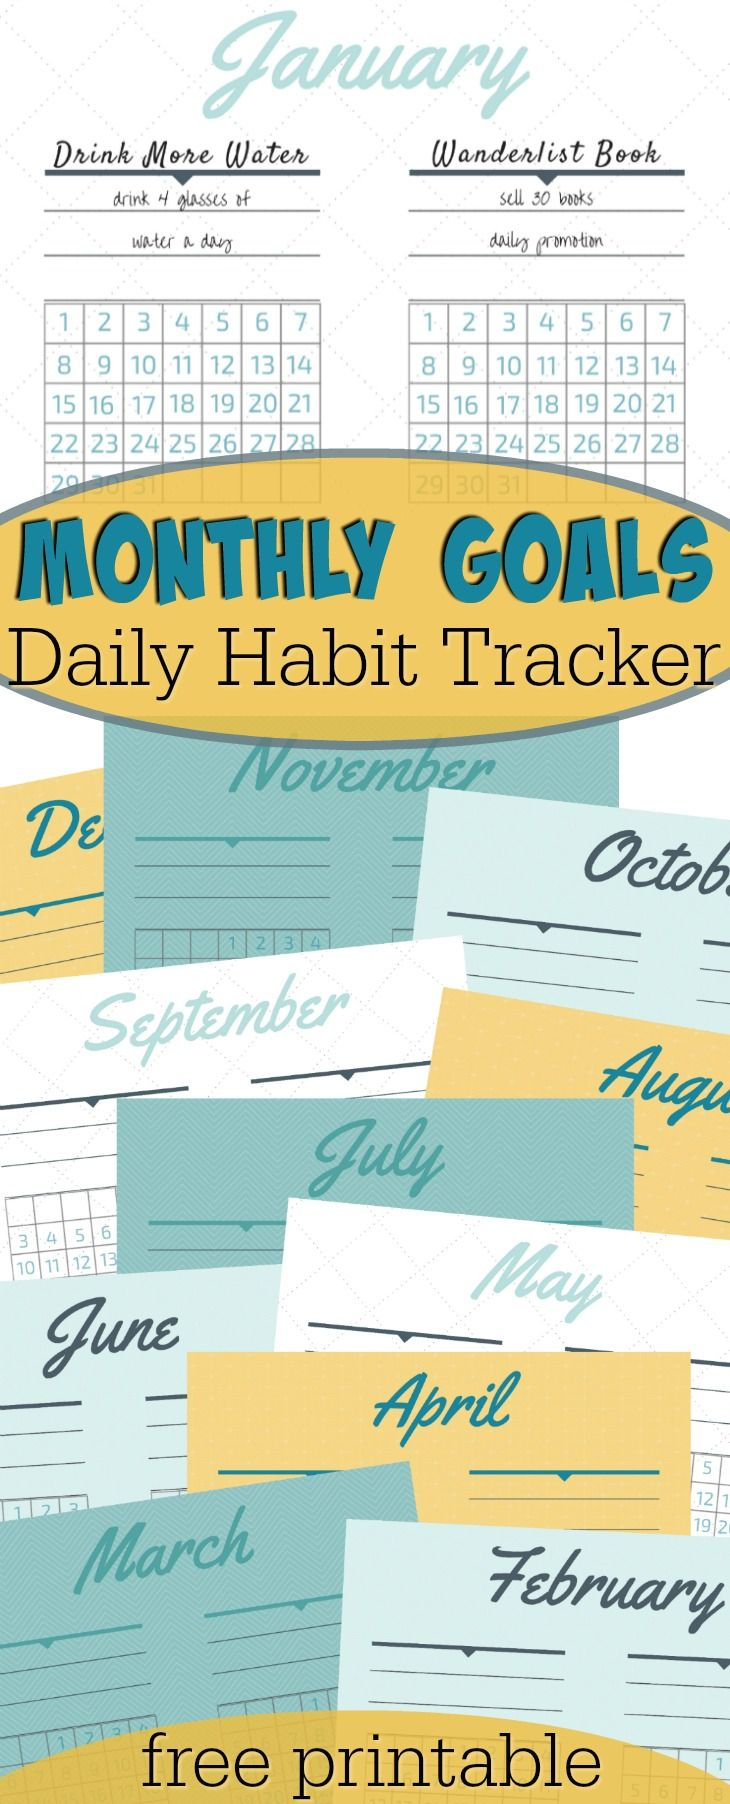 New years resolution ideas to help you succeed! Goals worksheet ...